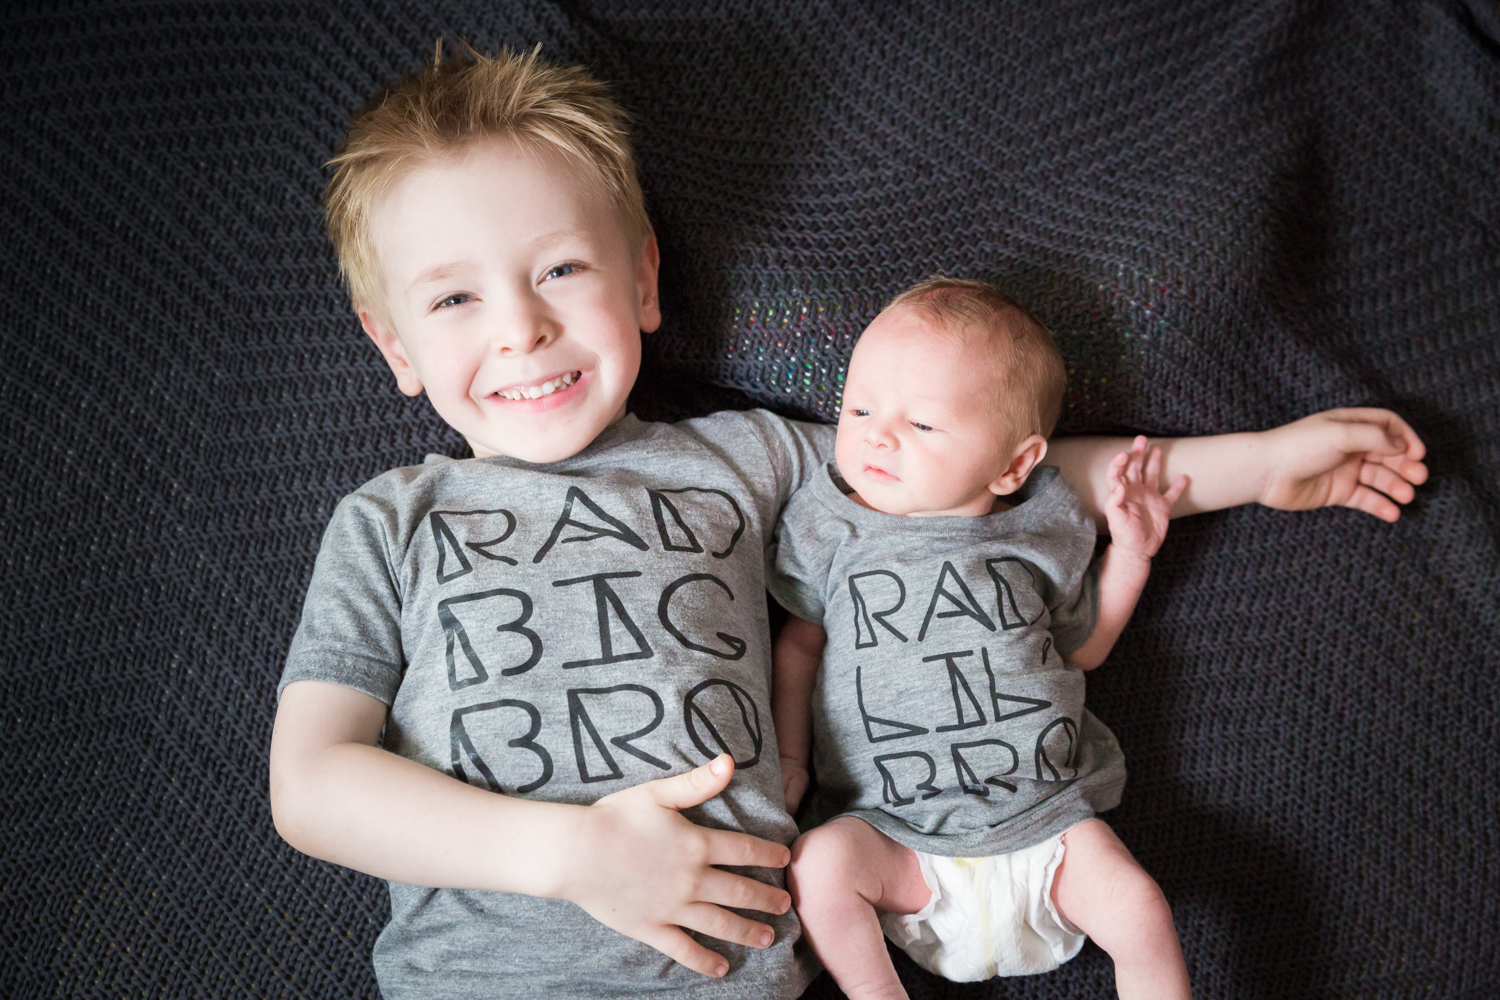 Little boy and newborn baby wearing matching grey t-shirts